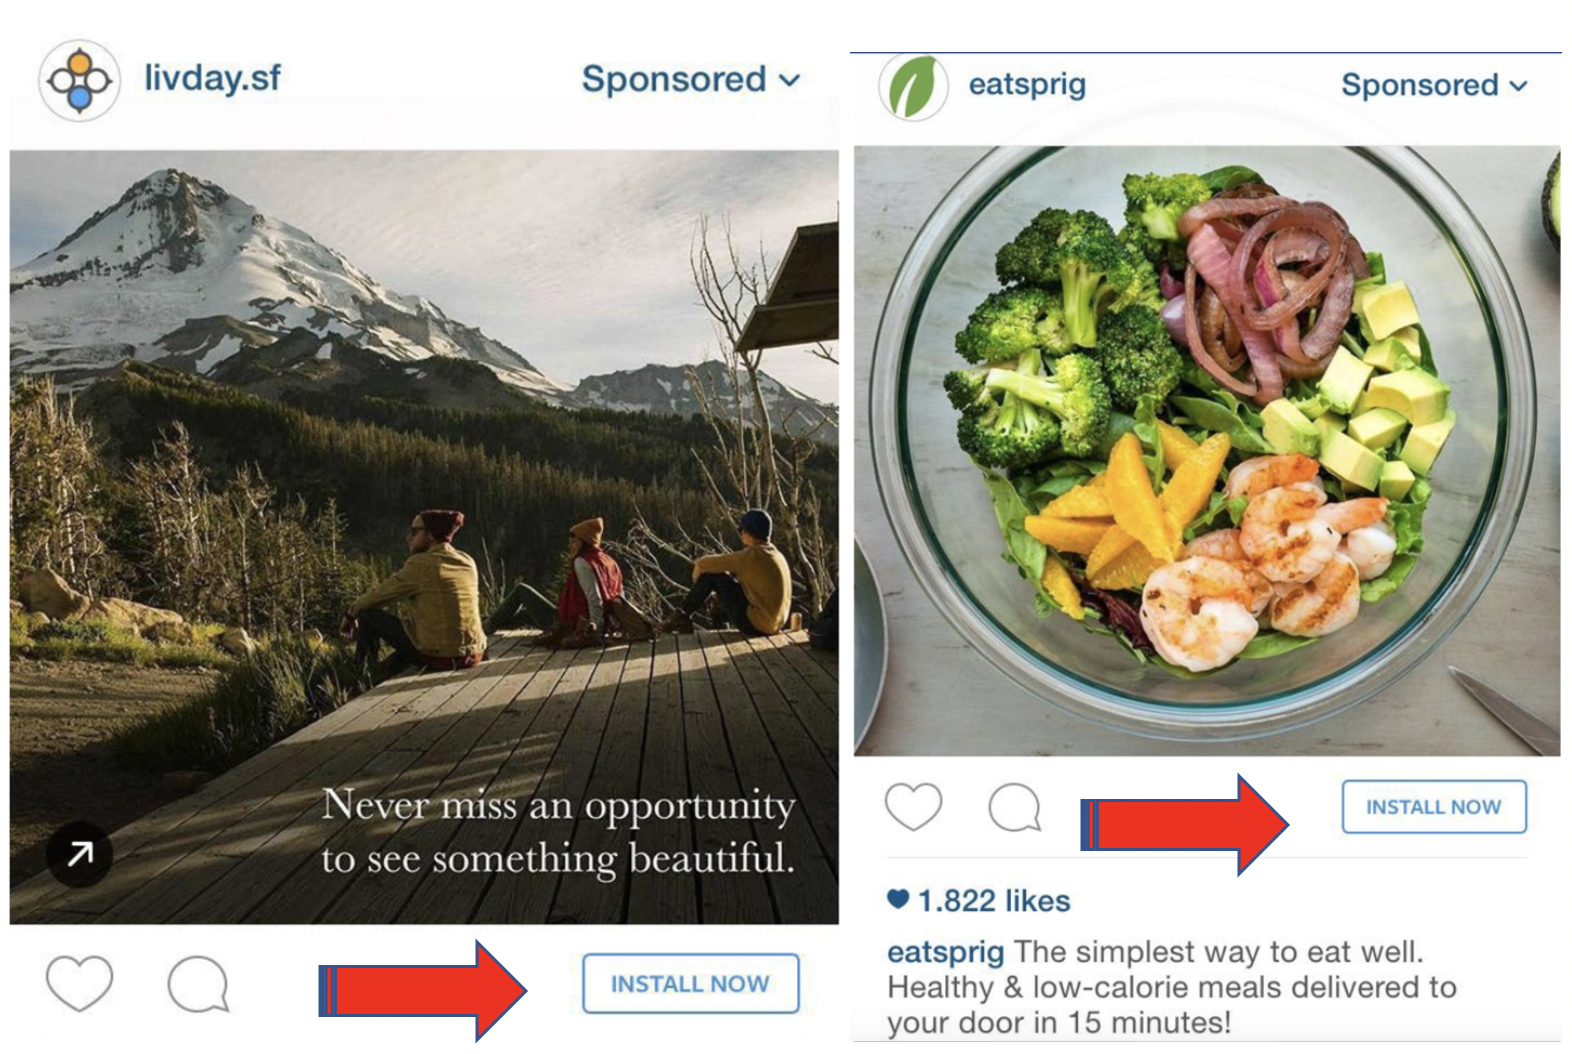 Instagram CTA on Ads – Install now